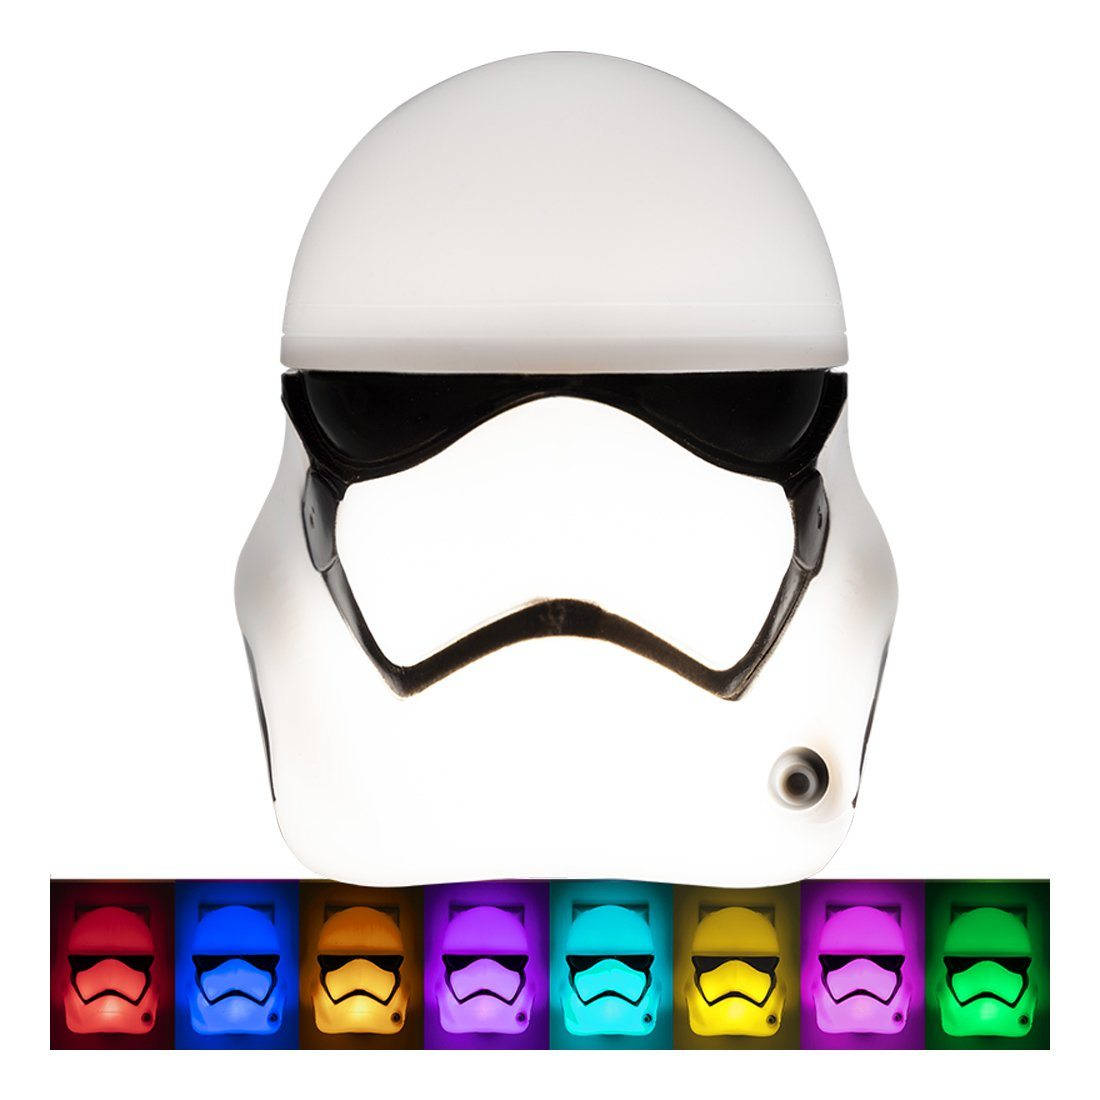 Star Wars Stormtrooper HeadLite LED Night Light, Color Select, Light Sensing